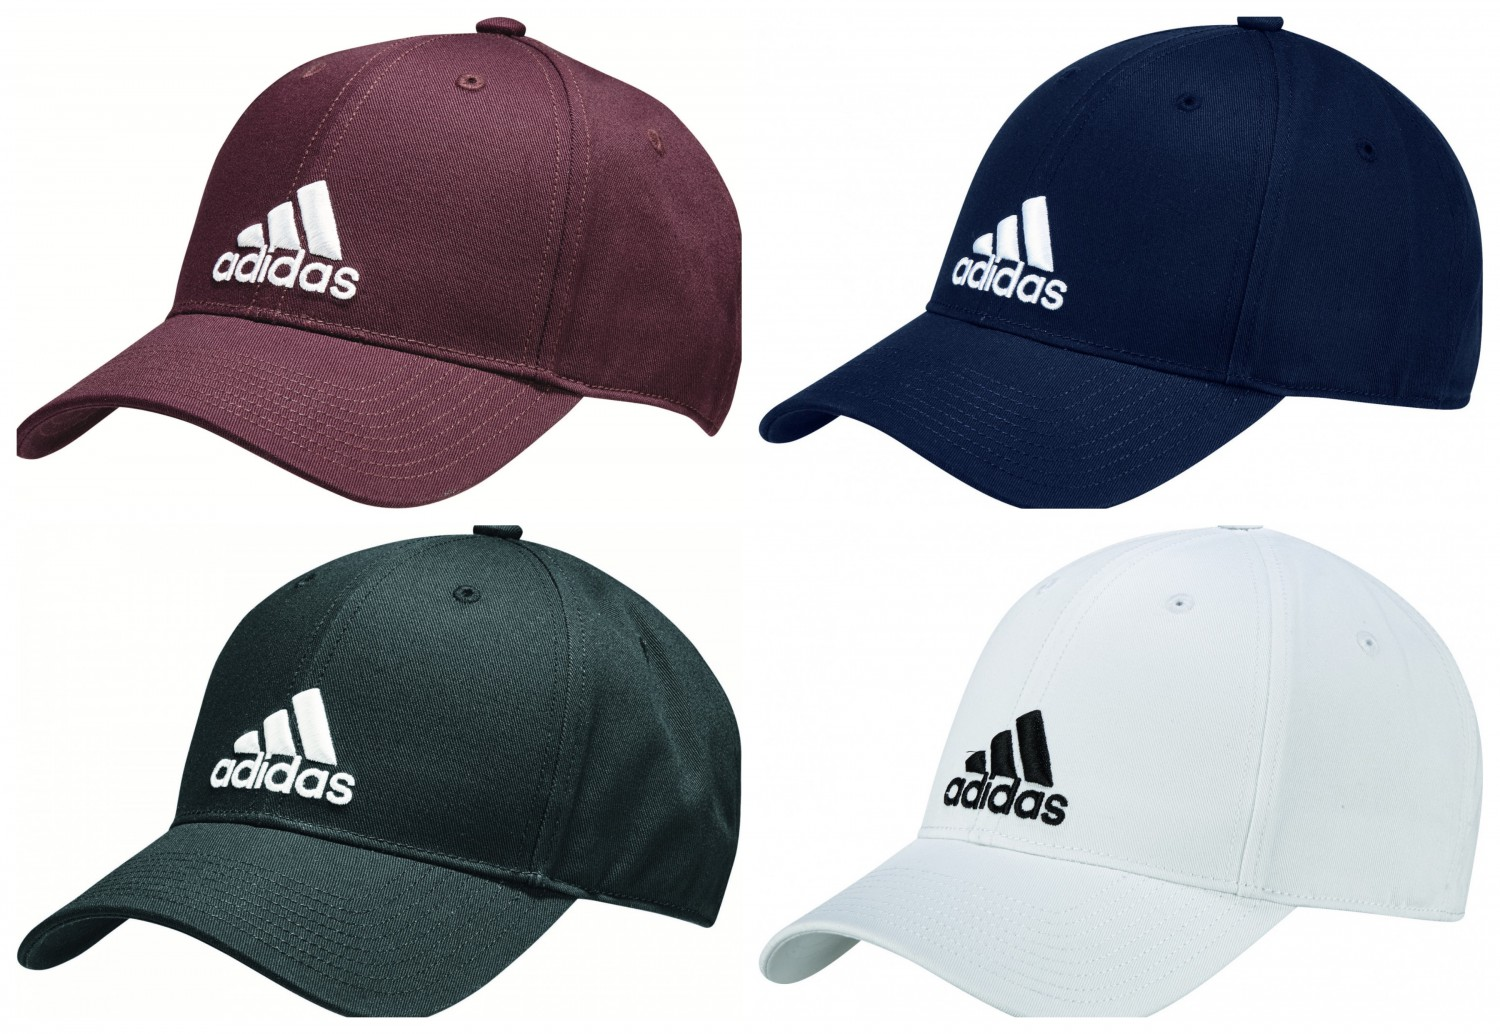 adidas panel classic cap baseball cap damen kinder herren mehrere farben ebay. Black Bedroom Furniture Sets. Home Design Ideas